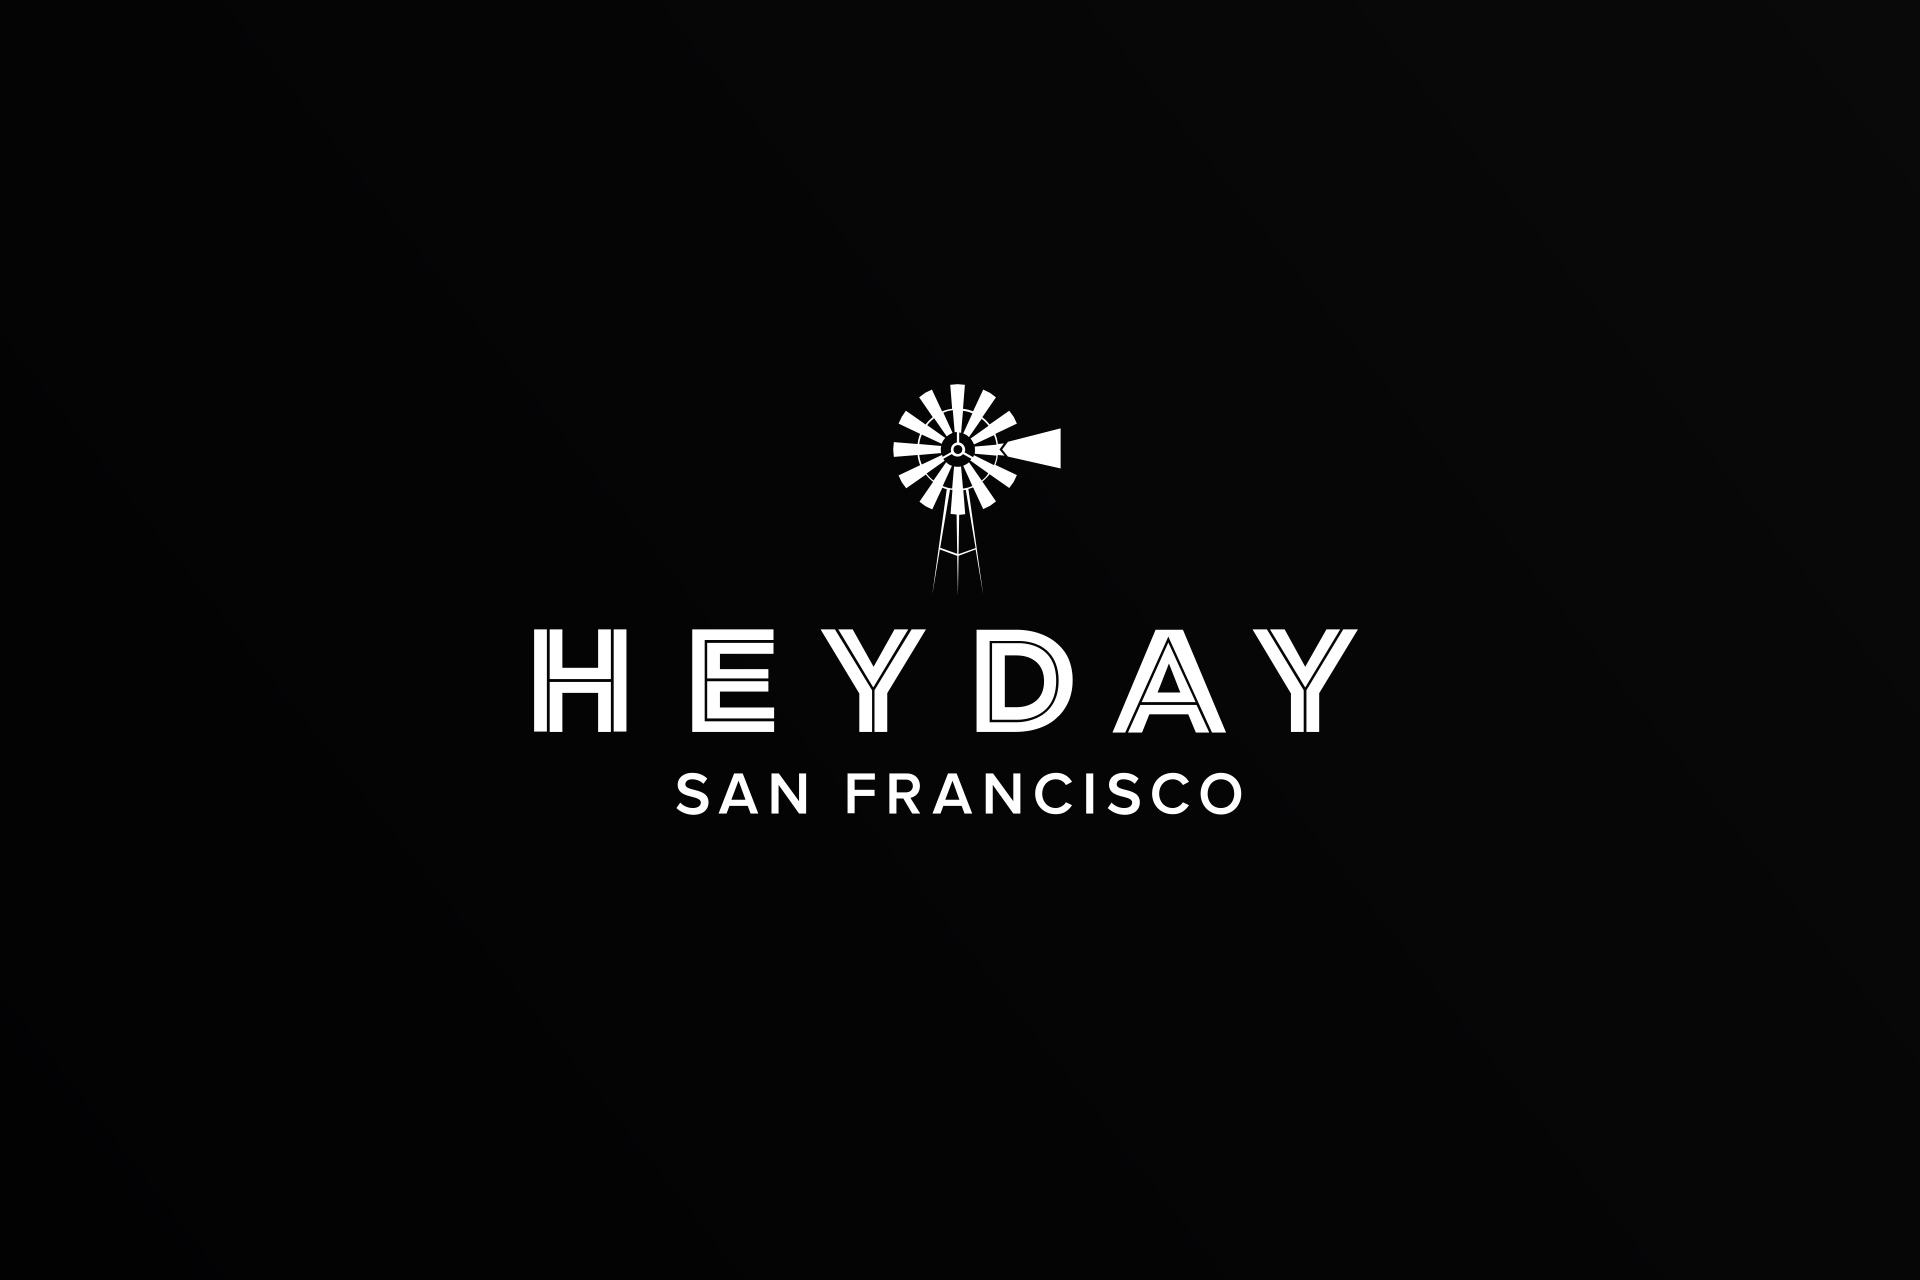 Edgardo Sanchez Logos – Heyday SF